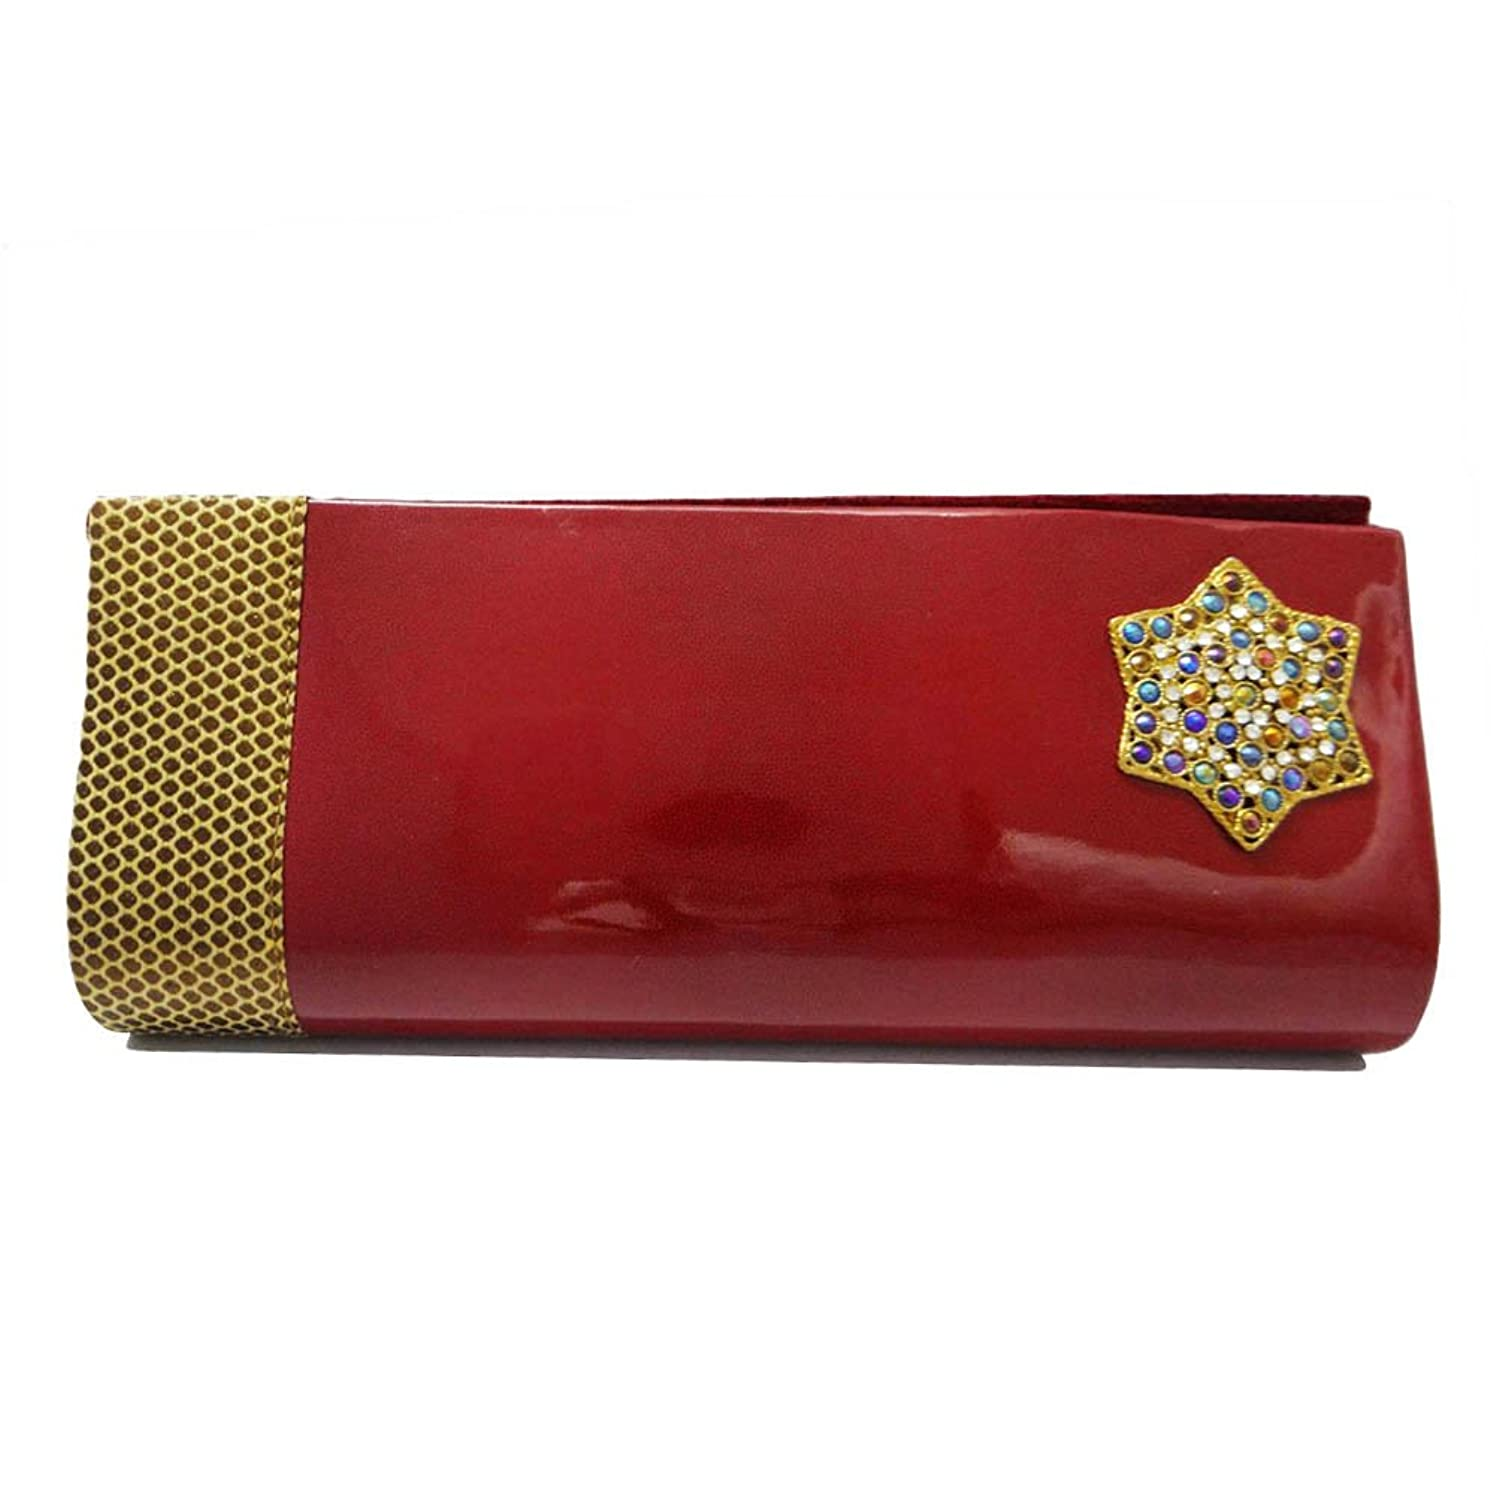 Fashionable Clutch Faux Leather Maroon Purse Evening Party Women Handbag India